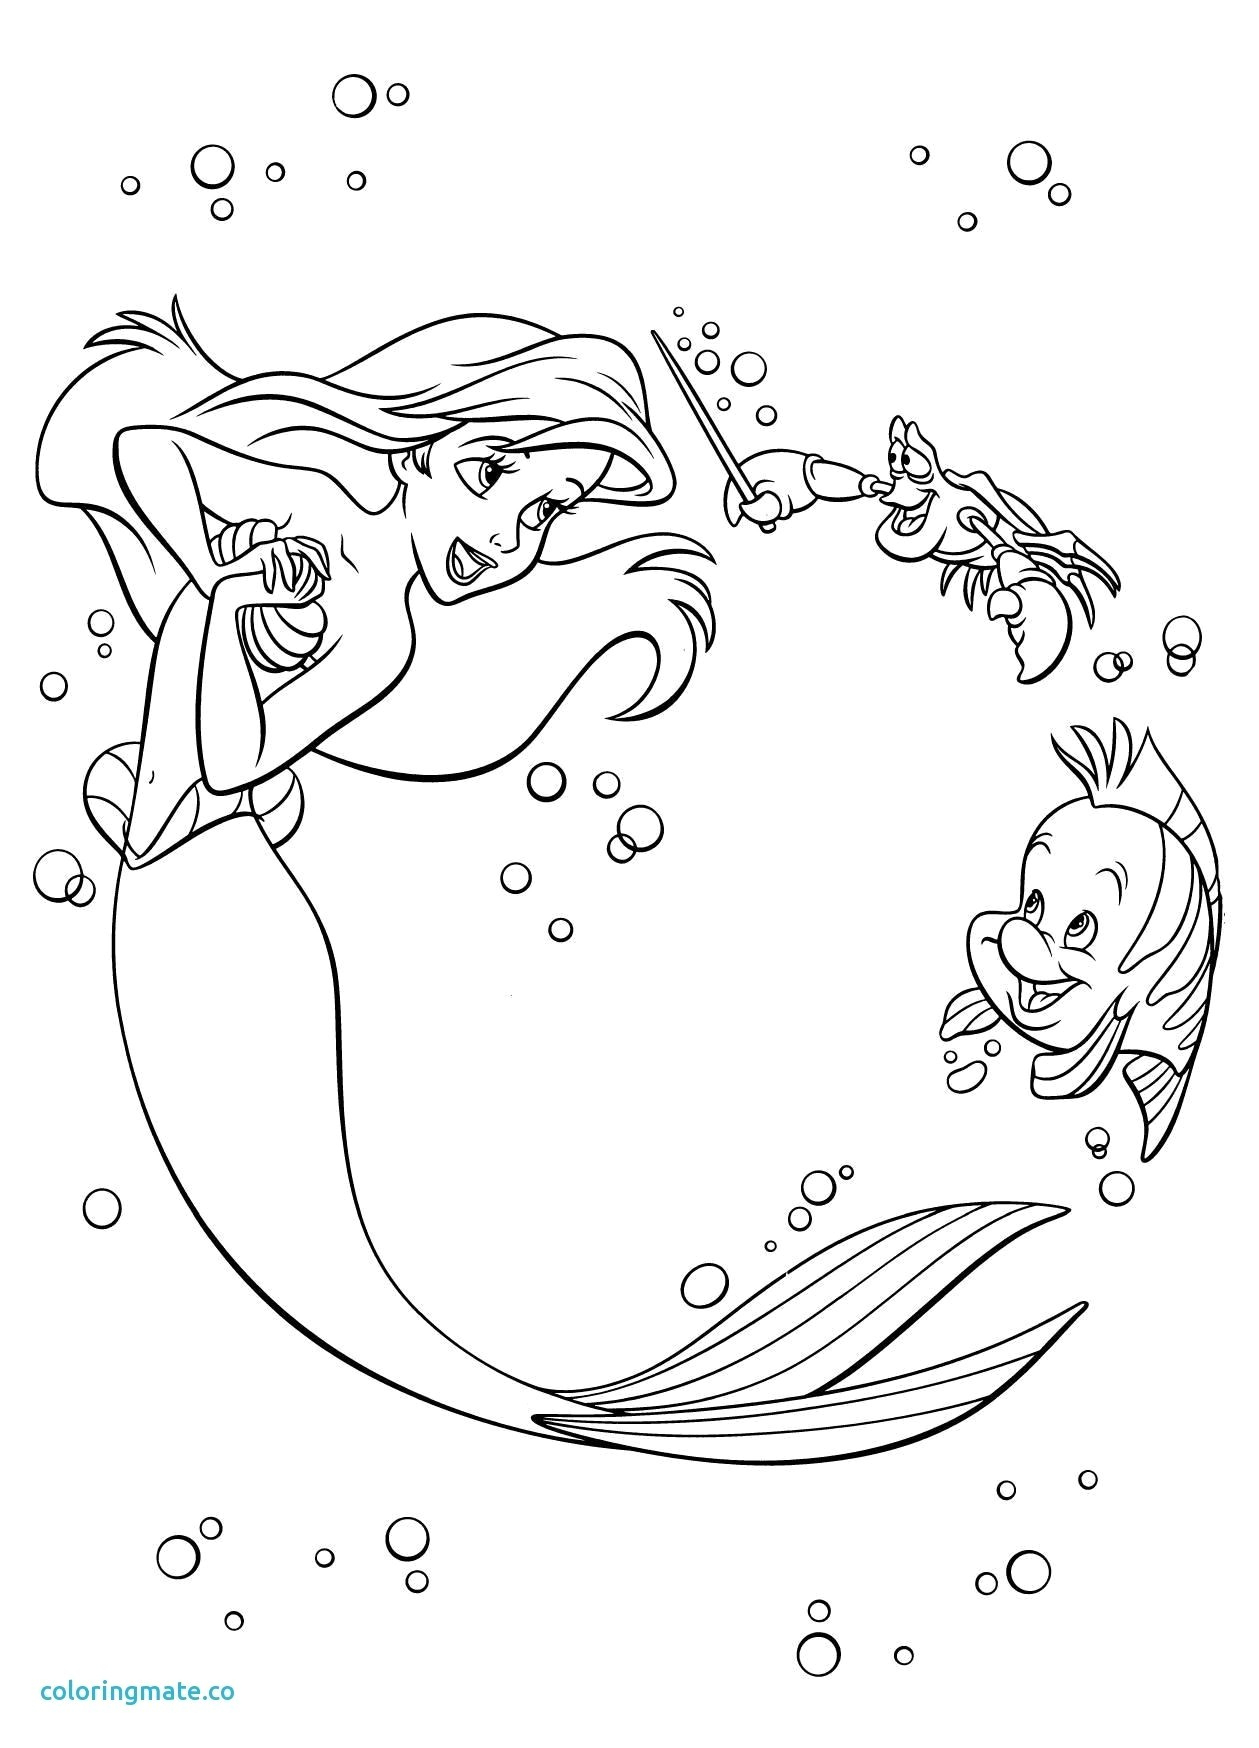 Godzilla Coloring Pages Princess Paw Patrol Coloring - Ariel And Flounder Coloring Page , HD Wallpaper & Backgrounds